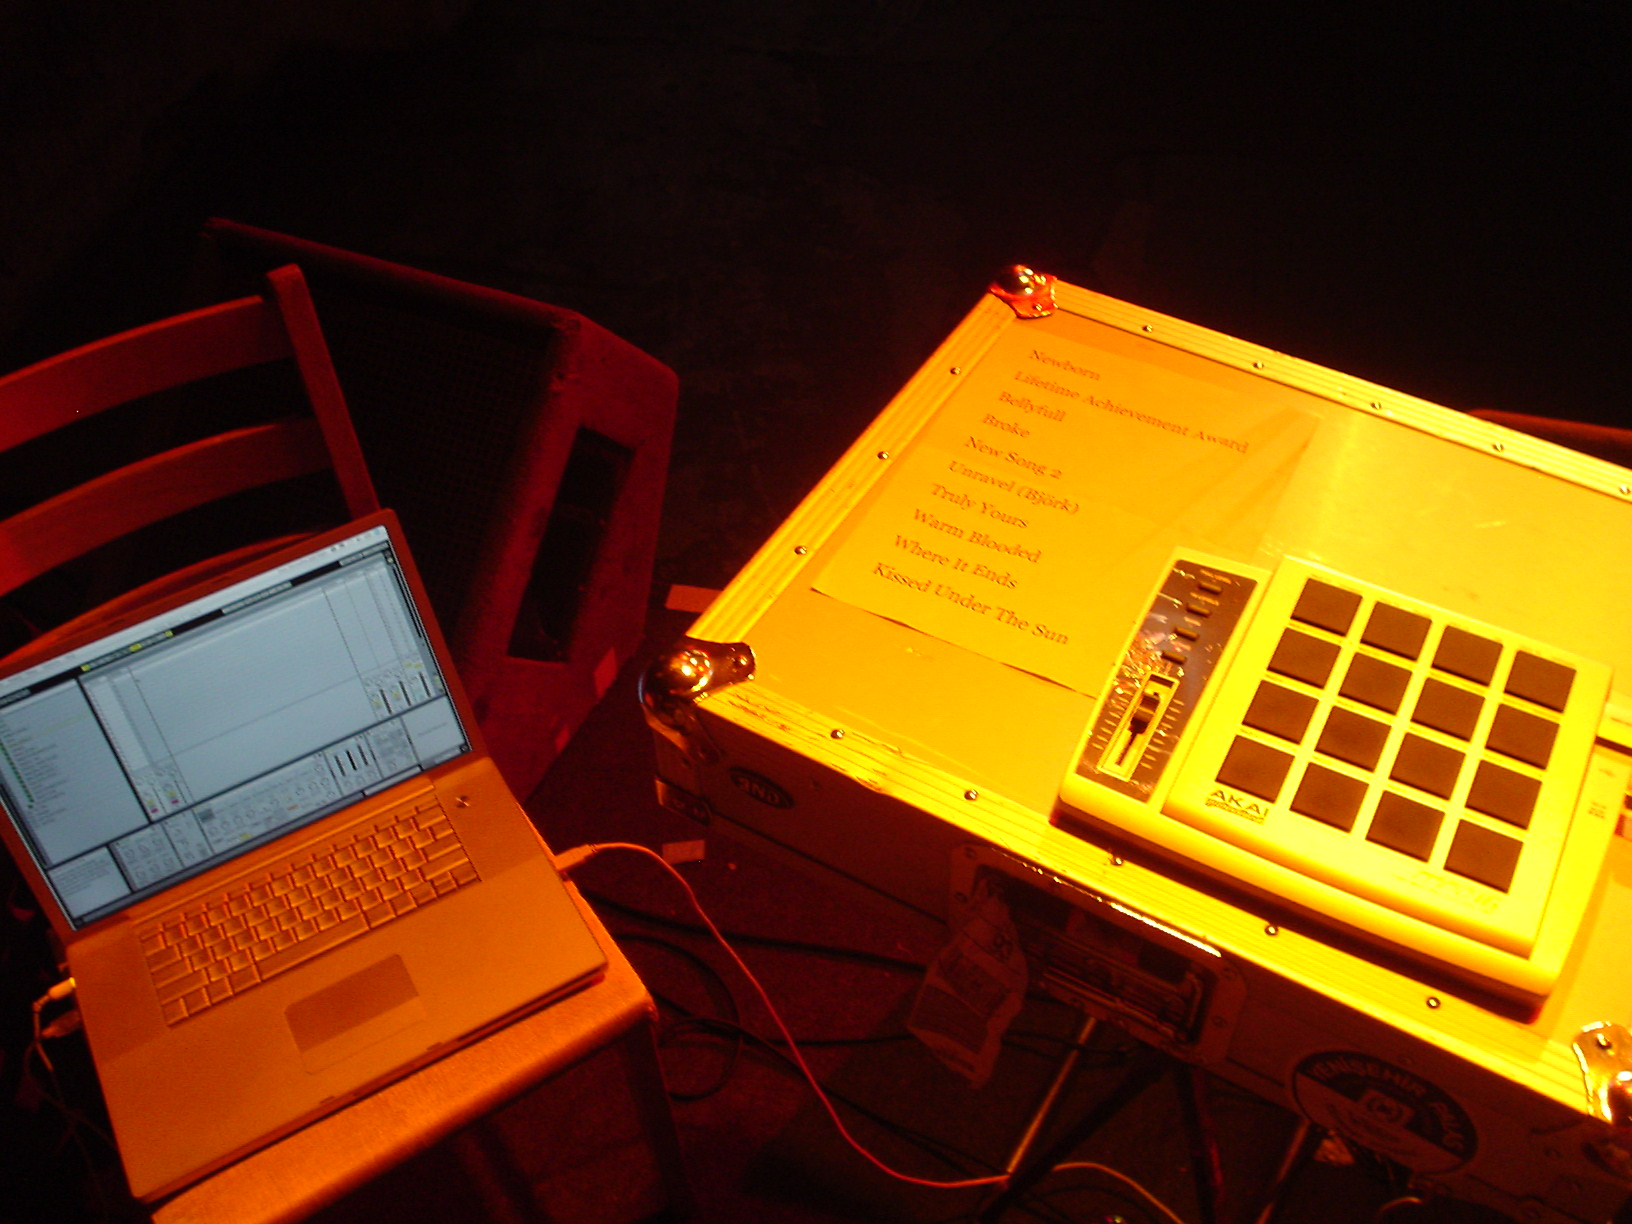 File:Akai MPD16, 17' PowerBook - my rig  jpg - Wikimedia Commons